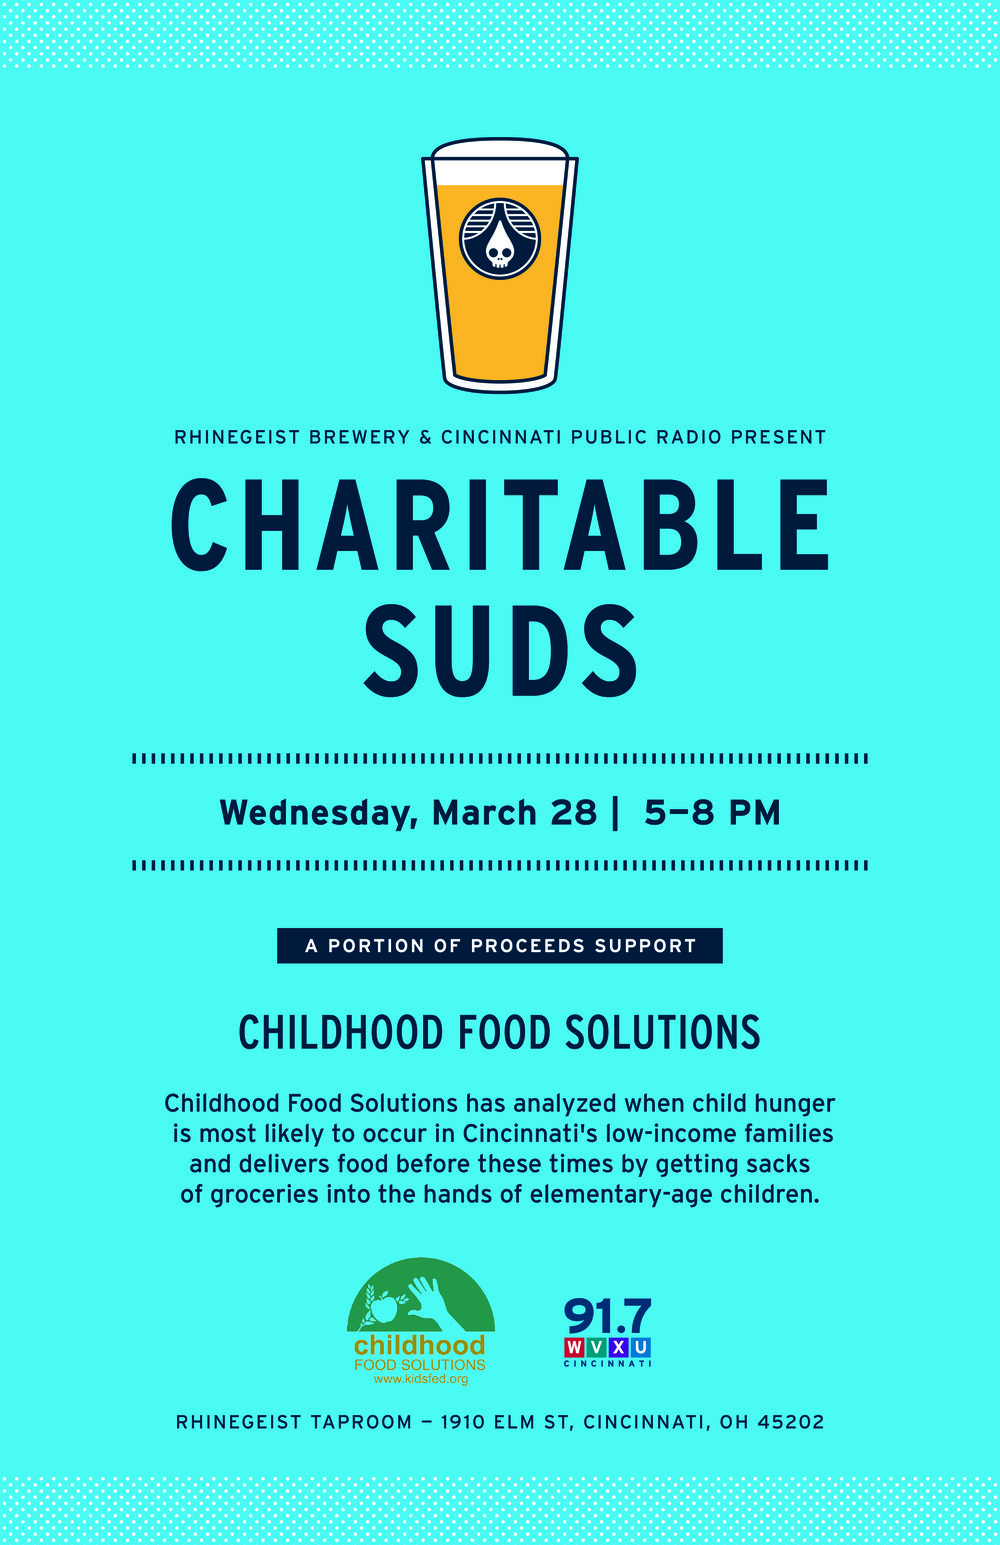 CharitableSuds_ChildhoodFoodSolutions_Poster-01.jpg